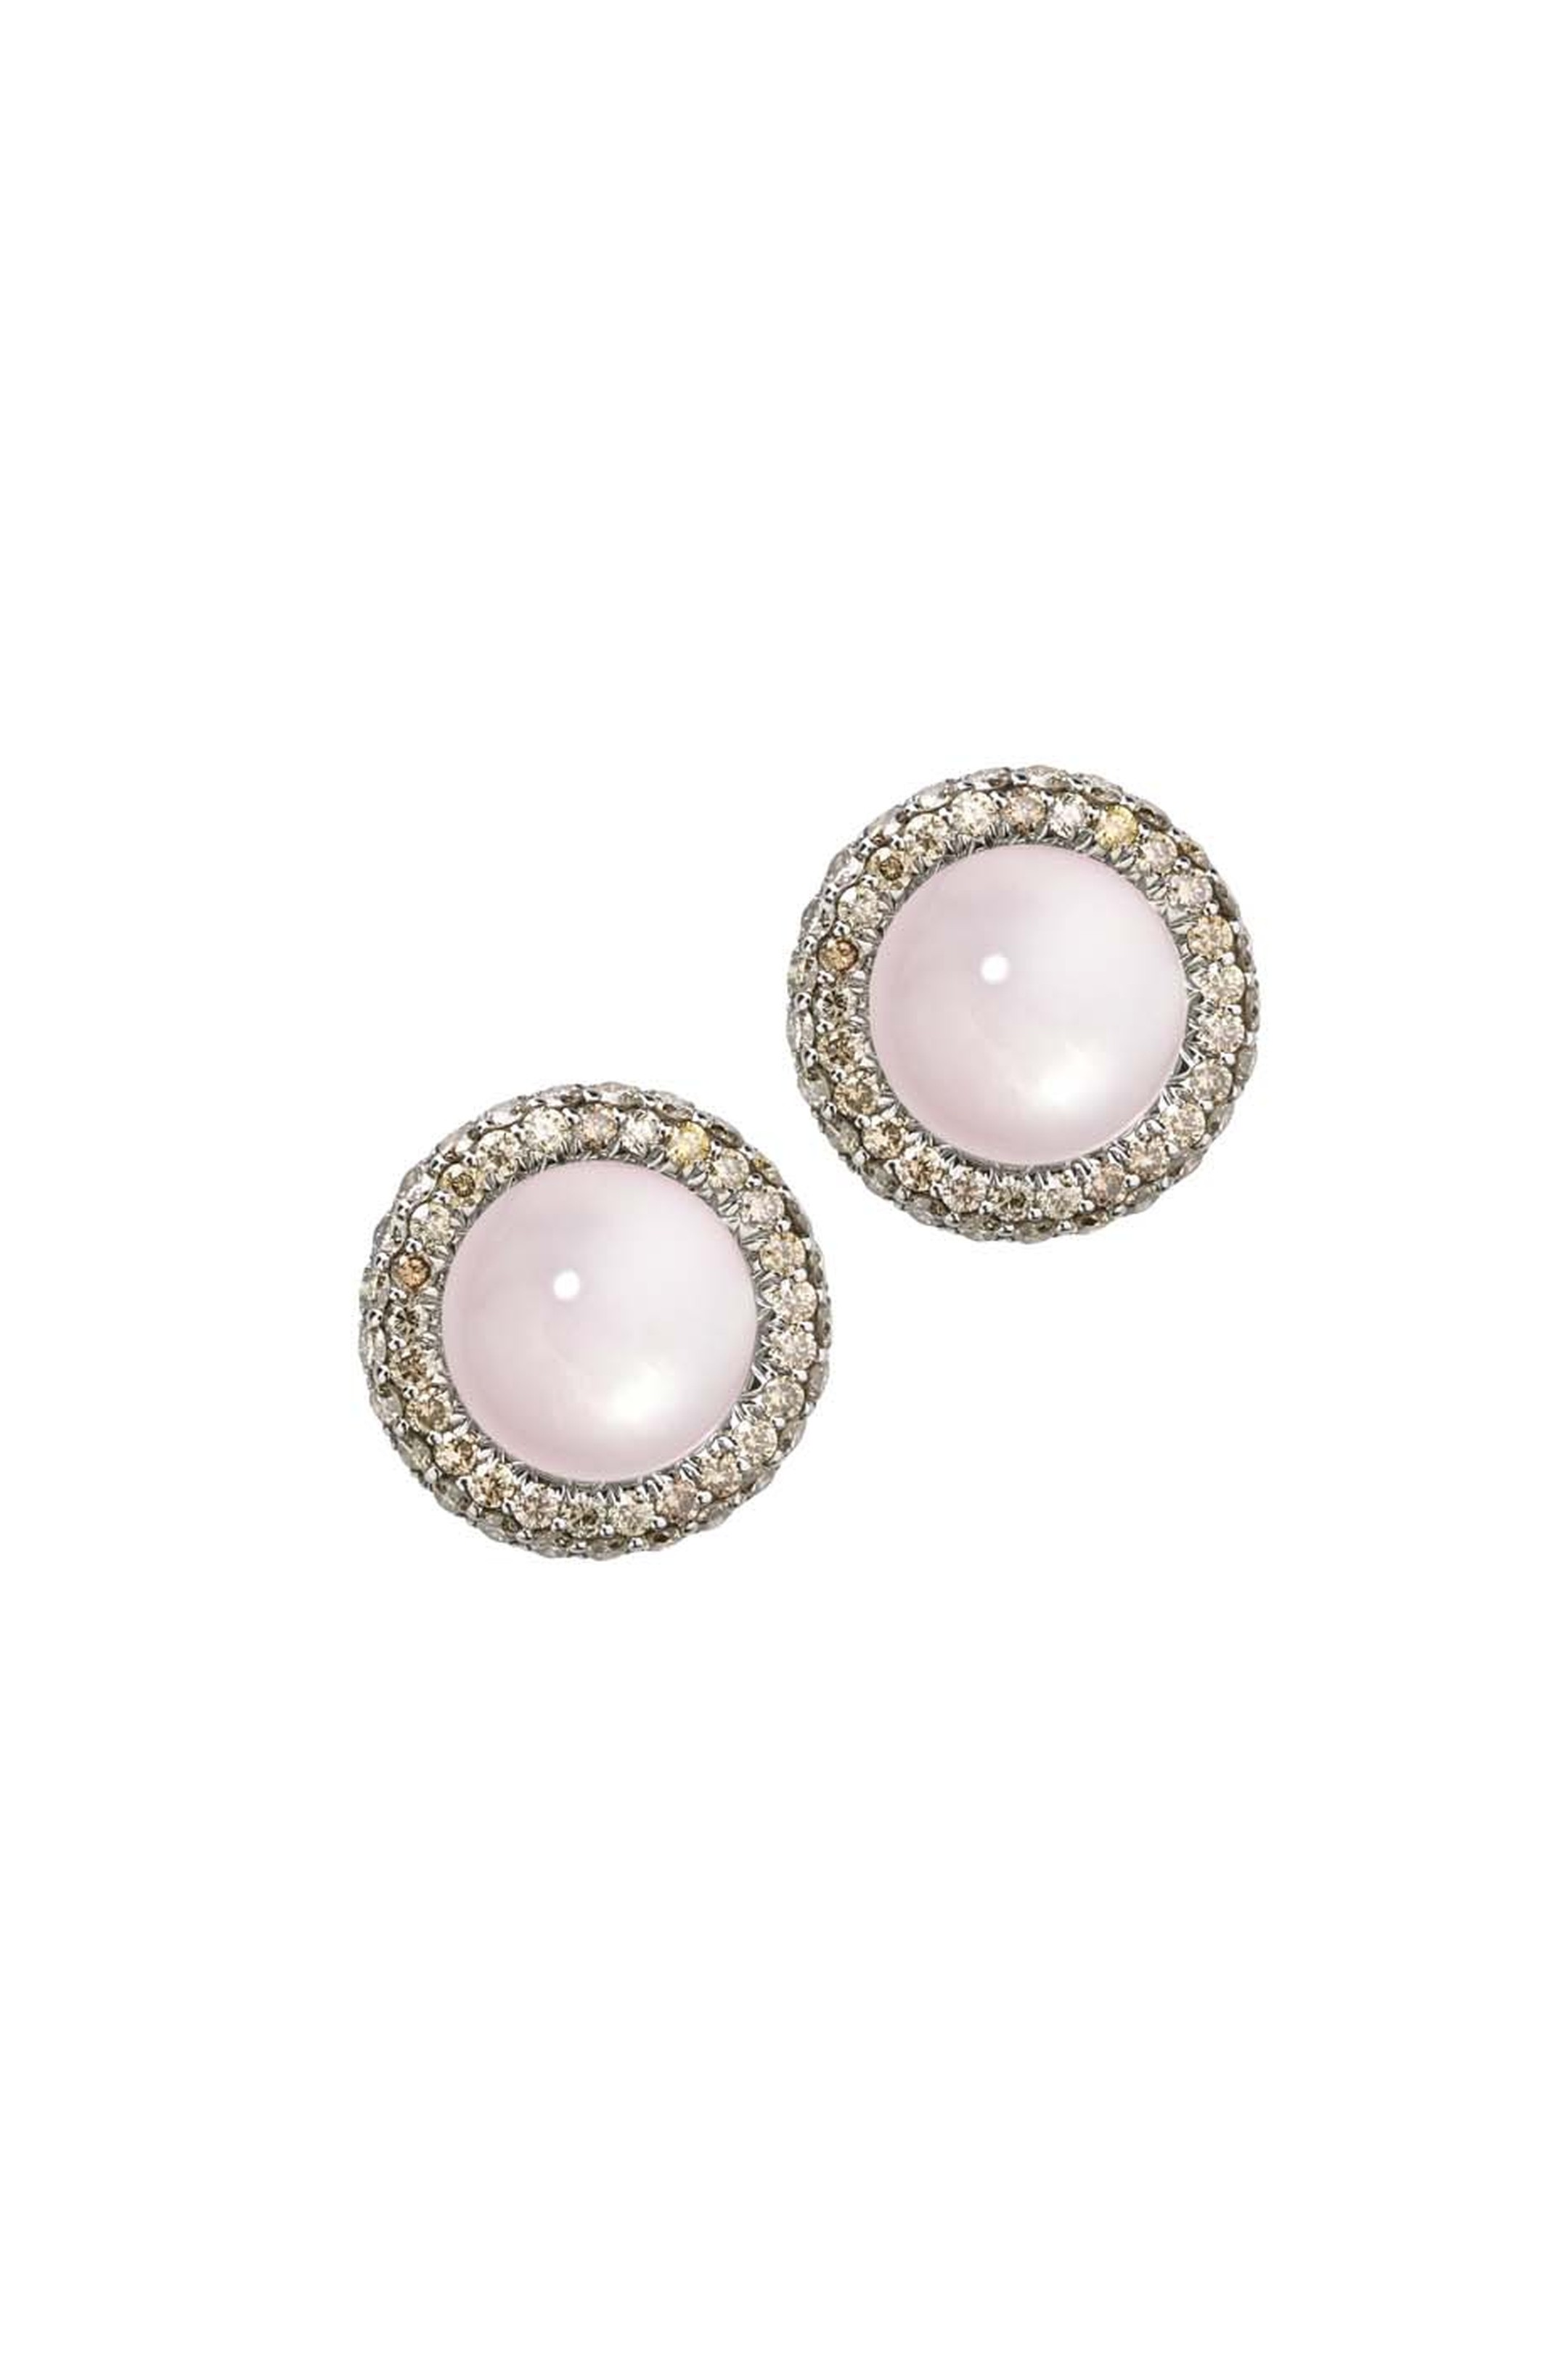 Elena Carrera earrings from the Celosías collection featuring yellow gold-plated silver with rose quartz and diamonds.